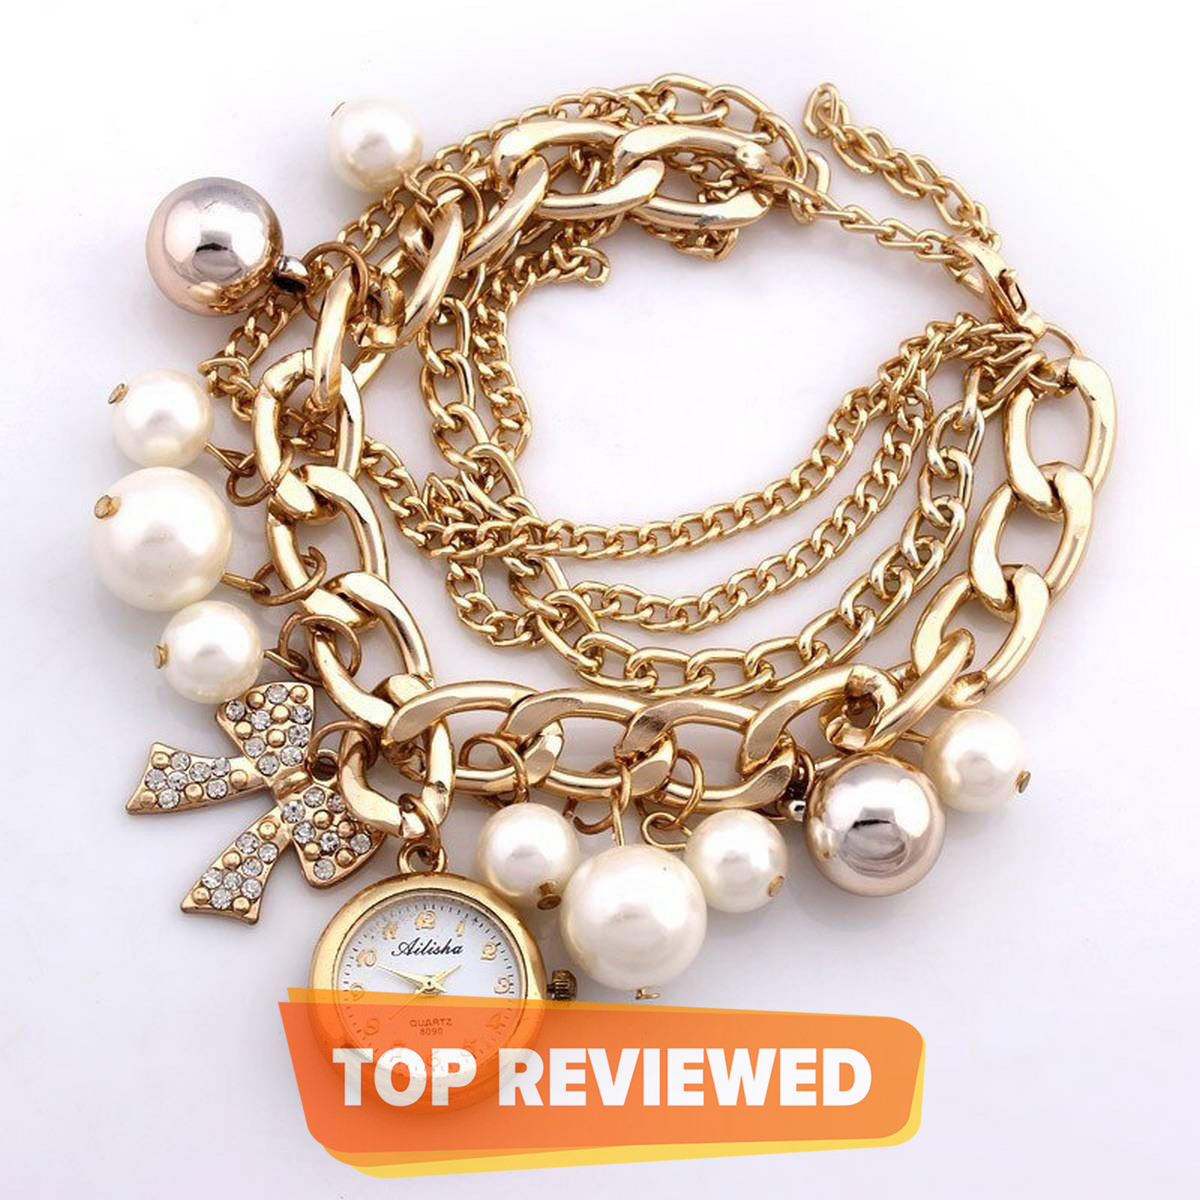 Stylish Golden Pearls Bracelet and Ladies Watch For Girls